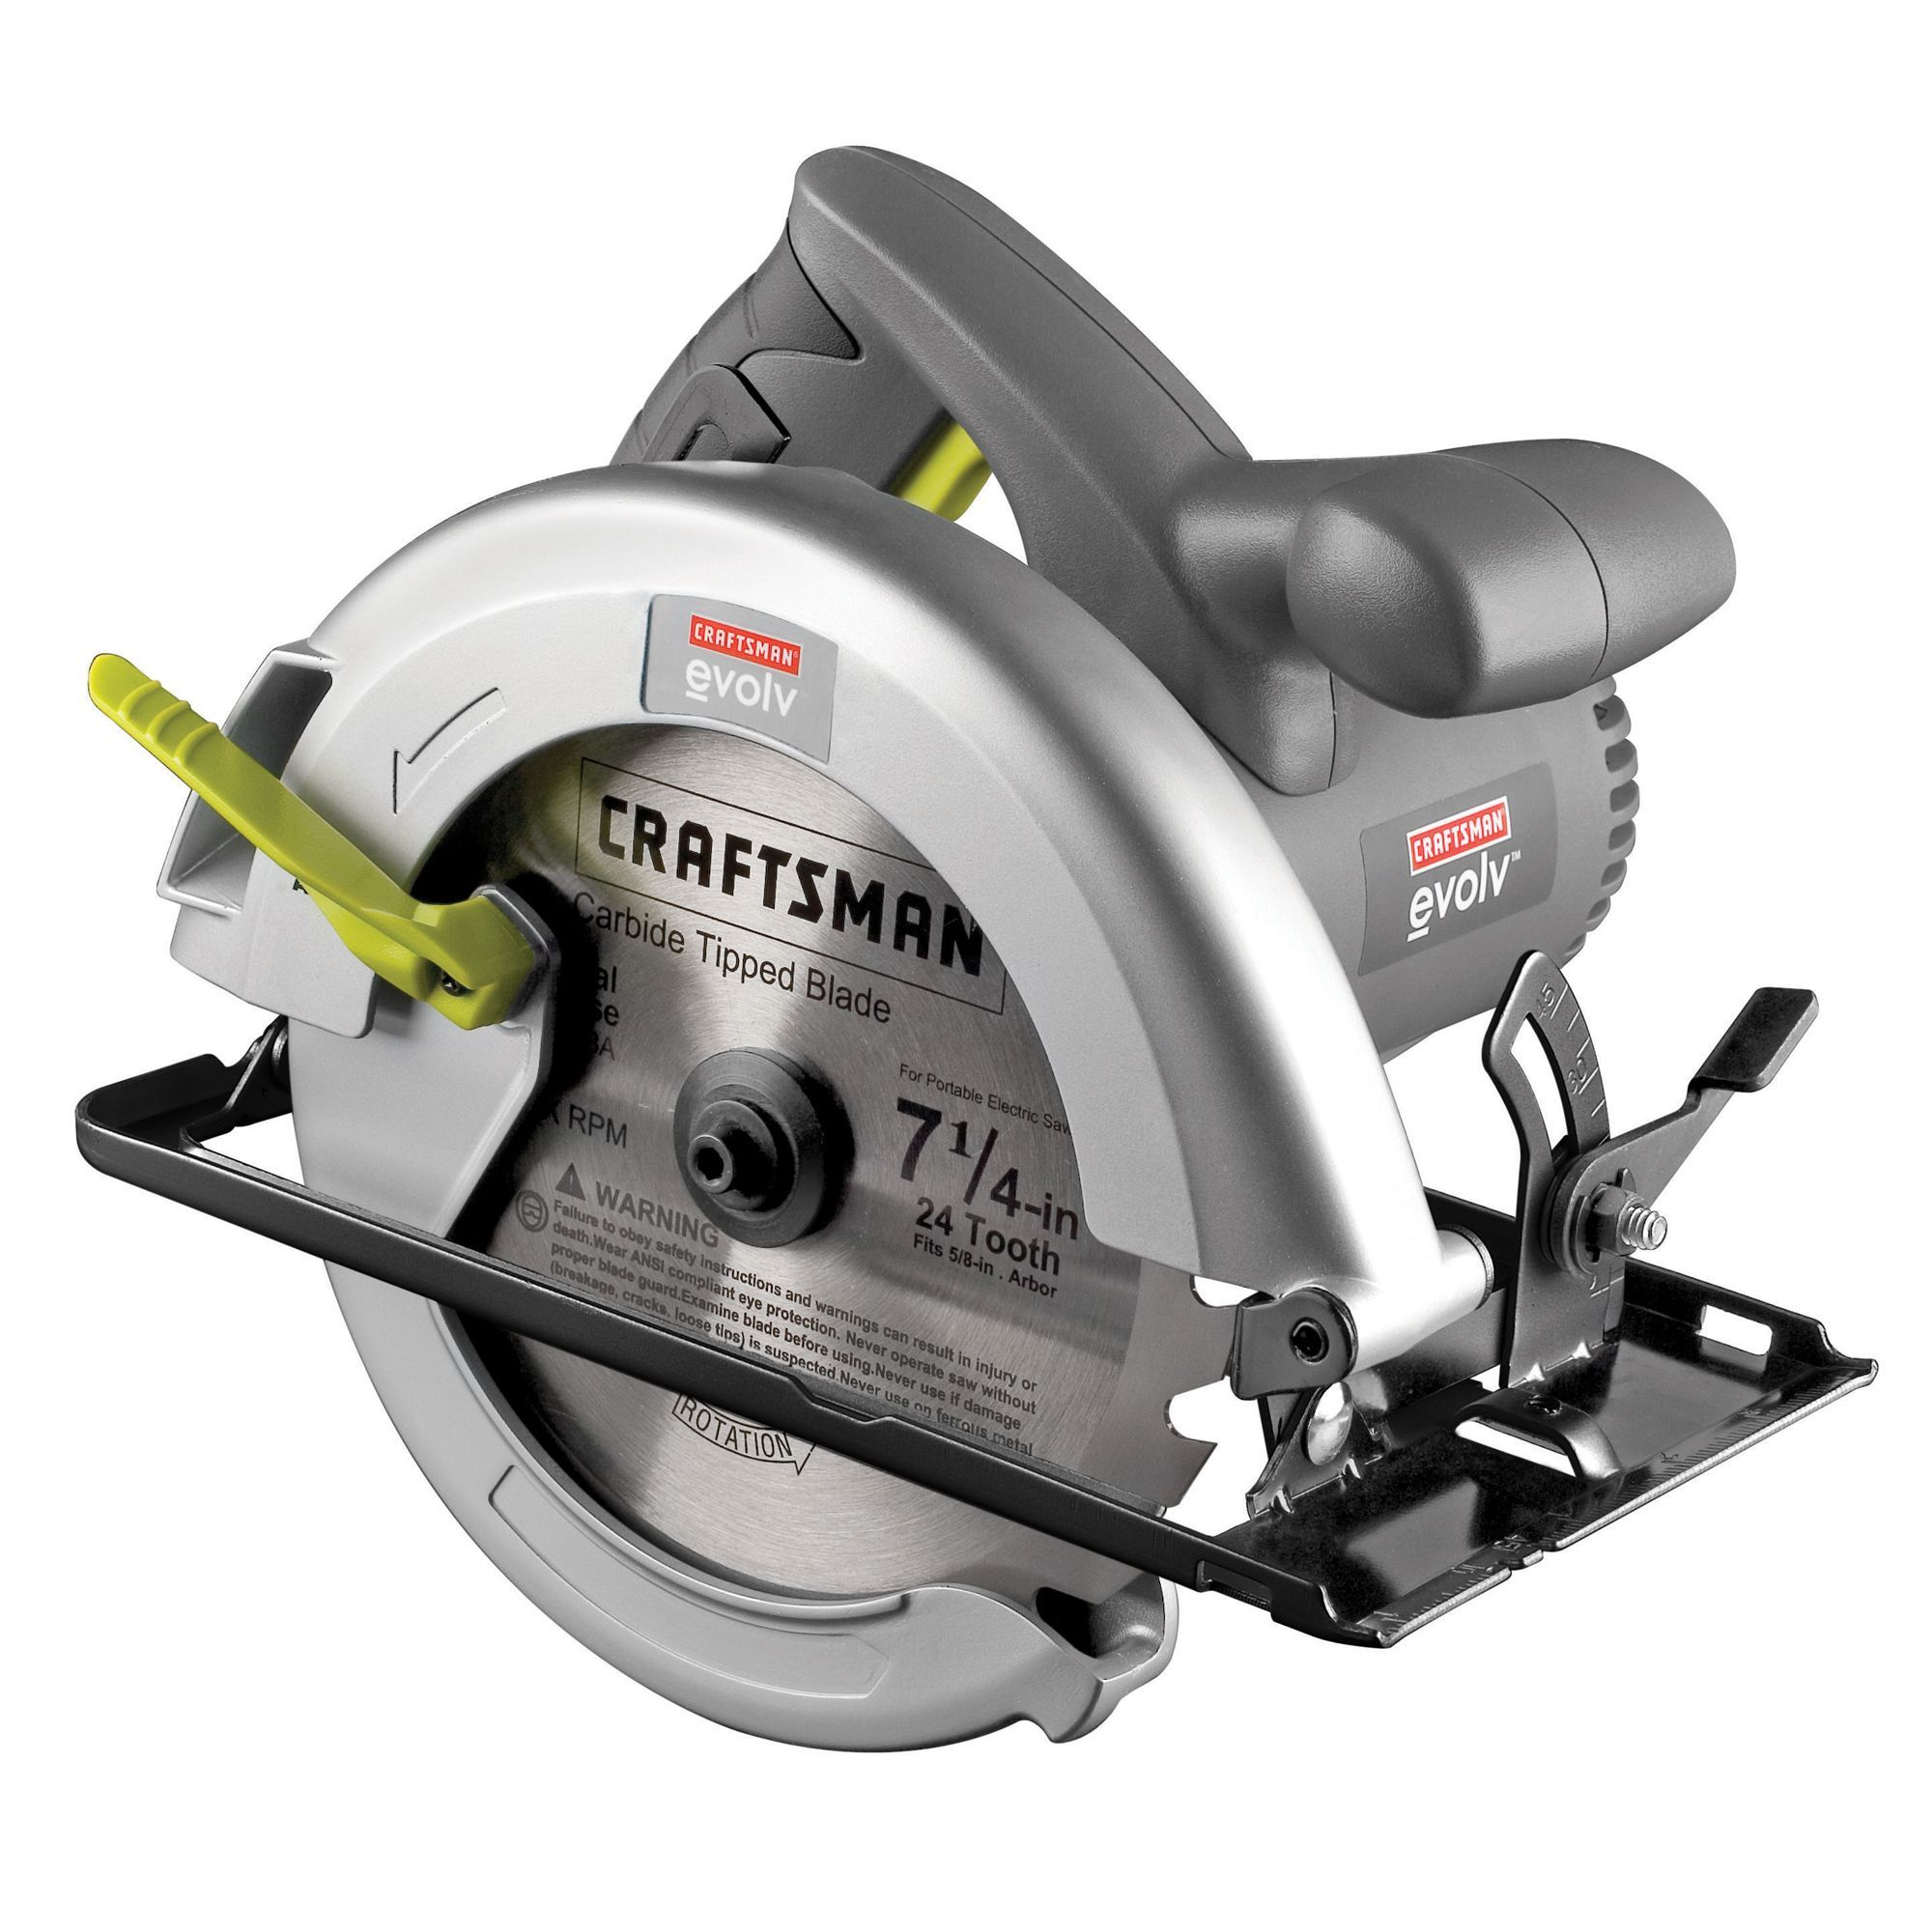 Craftsman 18780 Evolv 12 Amp Corded 7 1 4 In Circular Saw Circular Saw Craftsman Circular